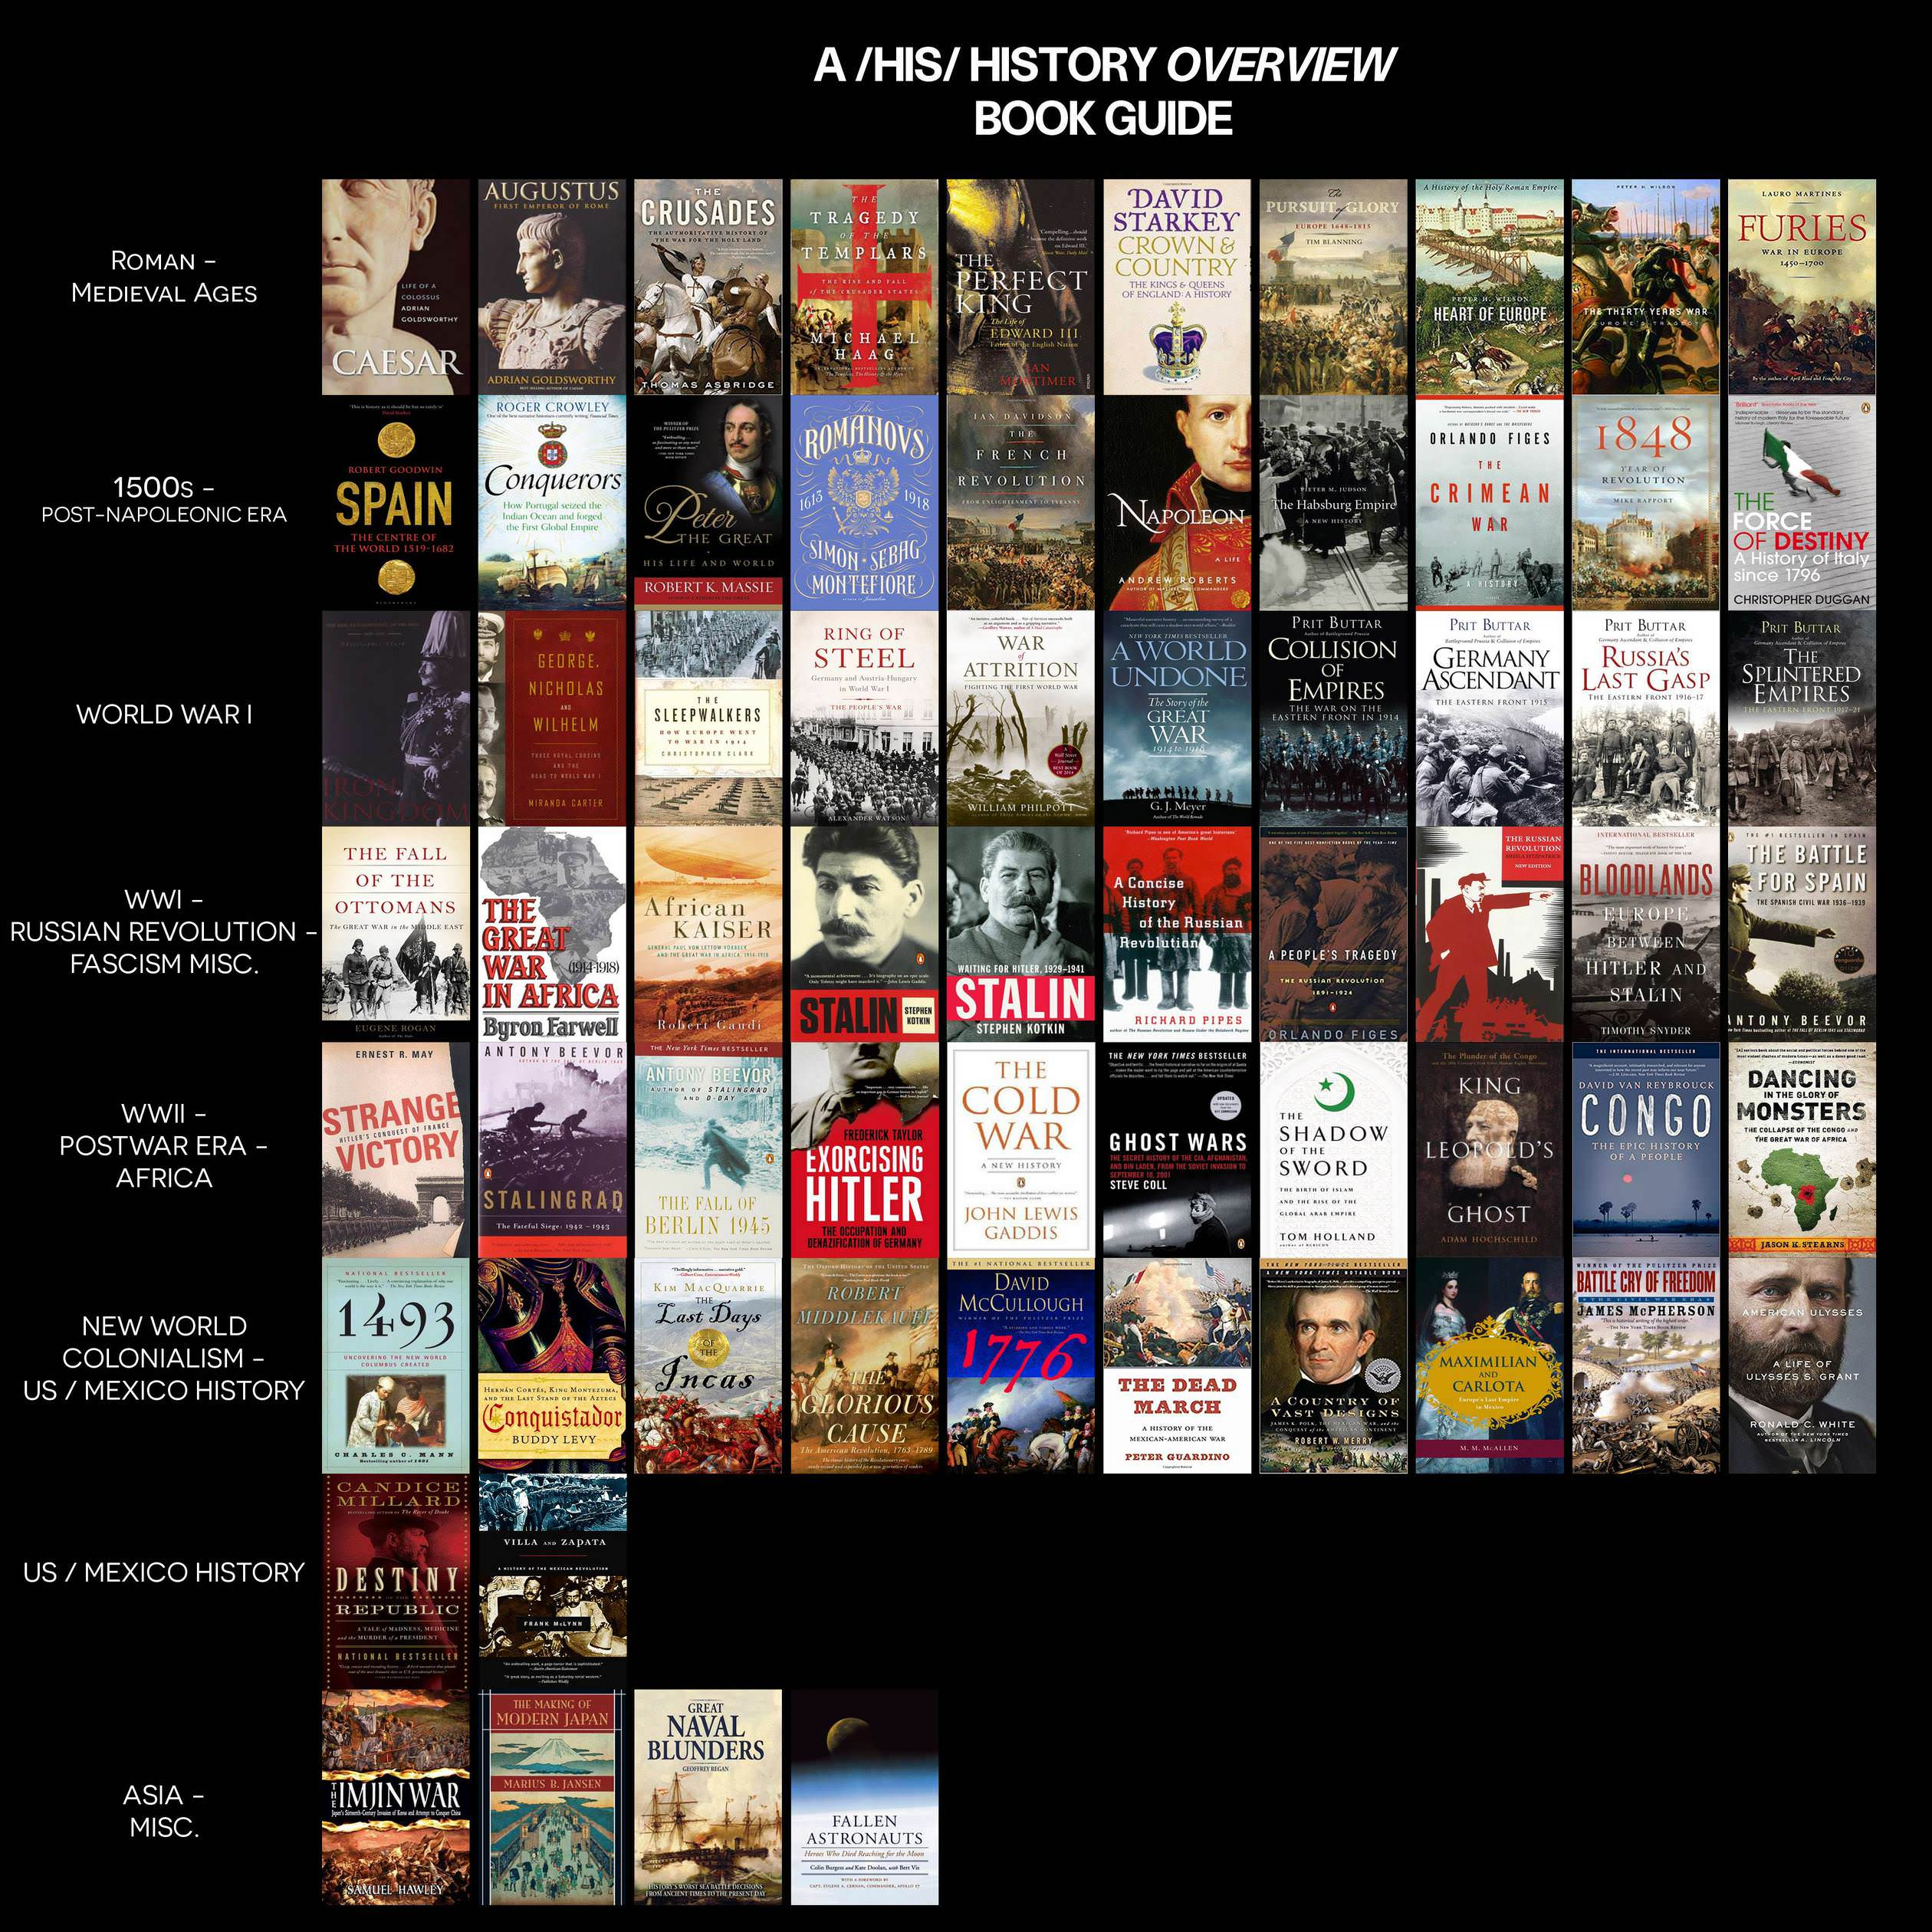 11-History-Overview-Book-Guide-READING-L